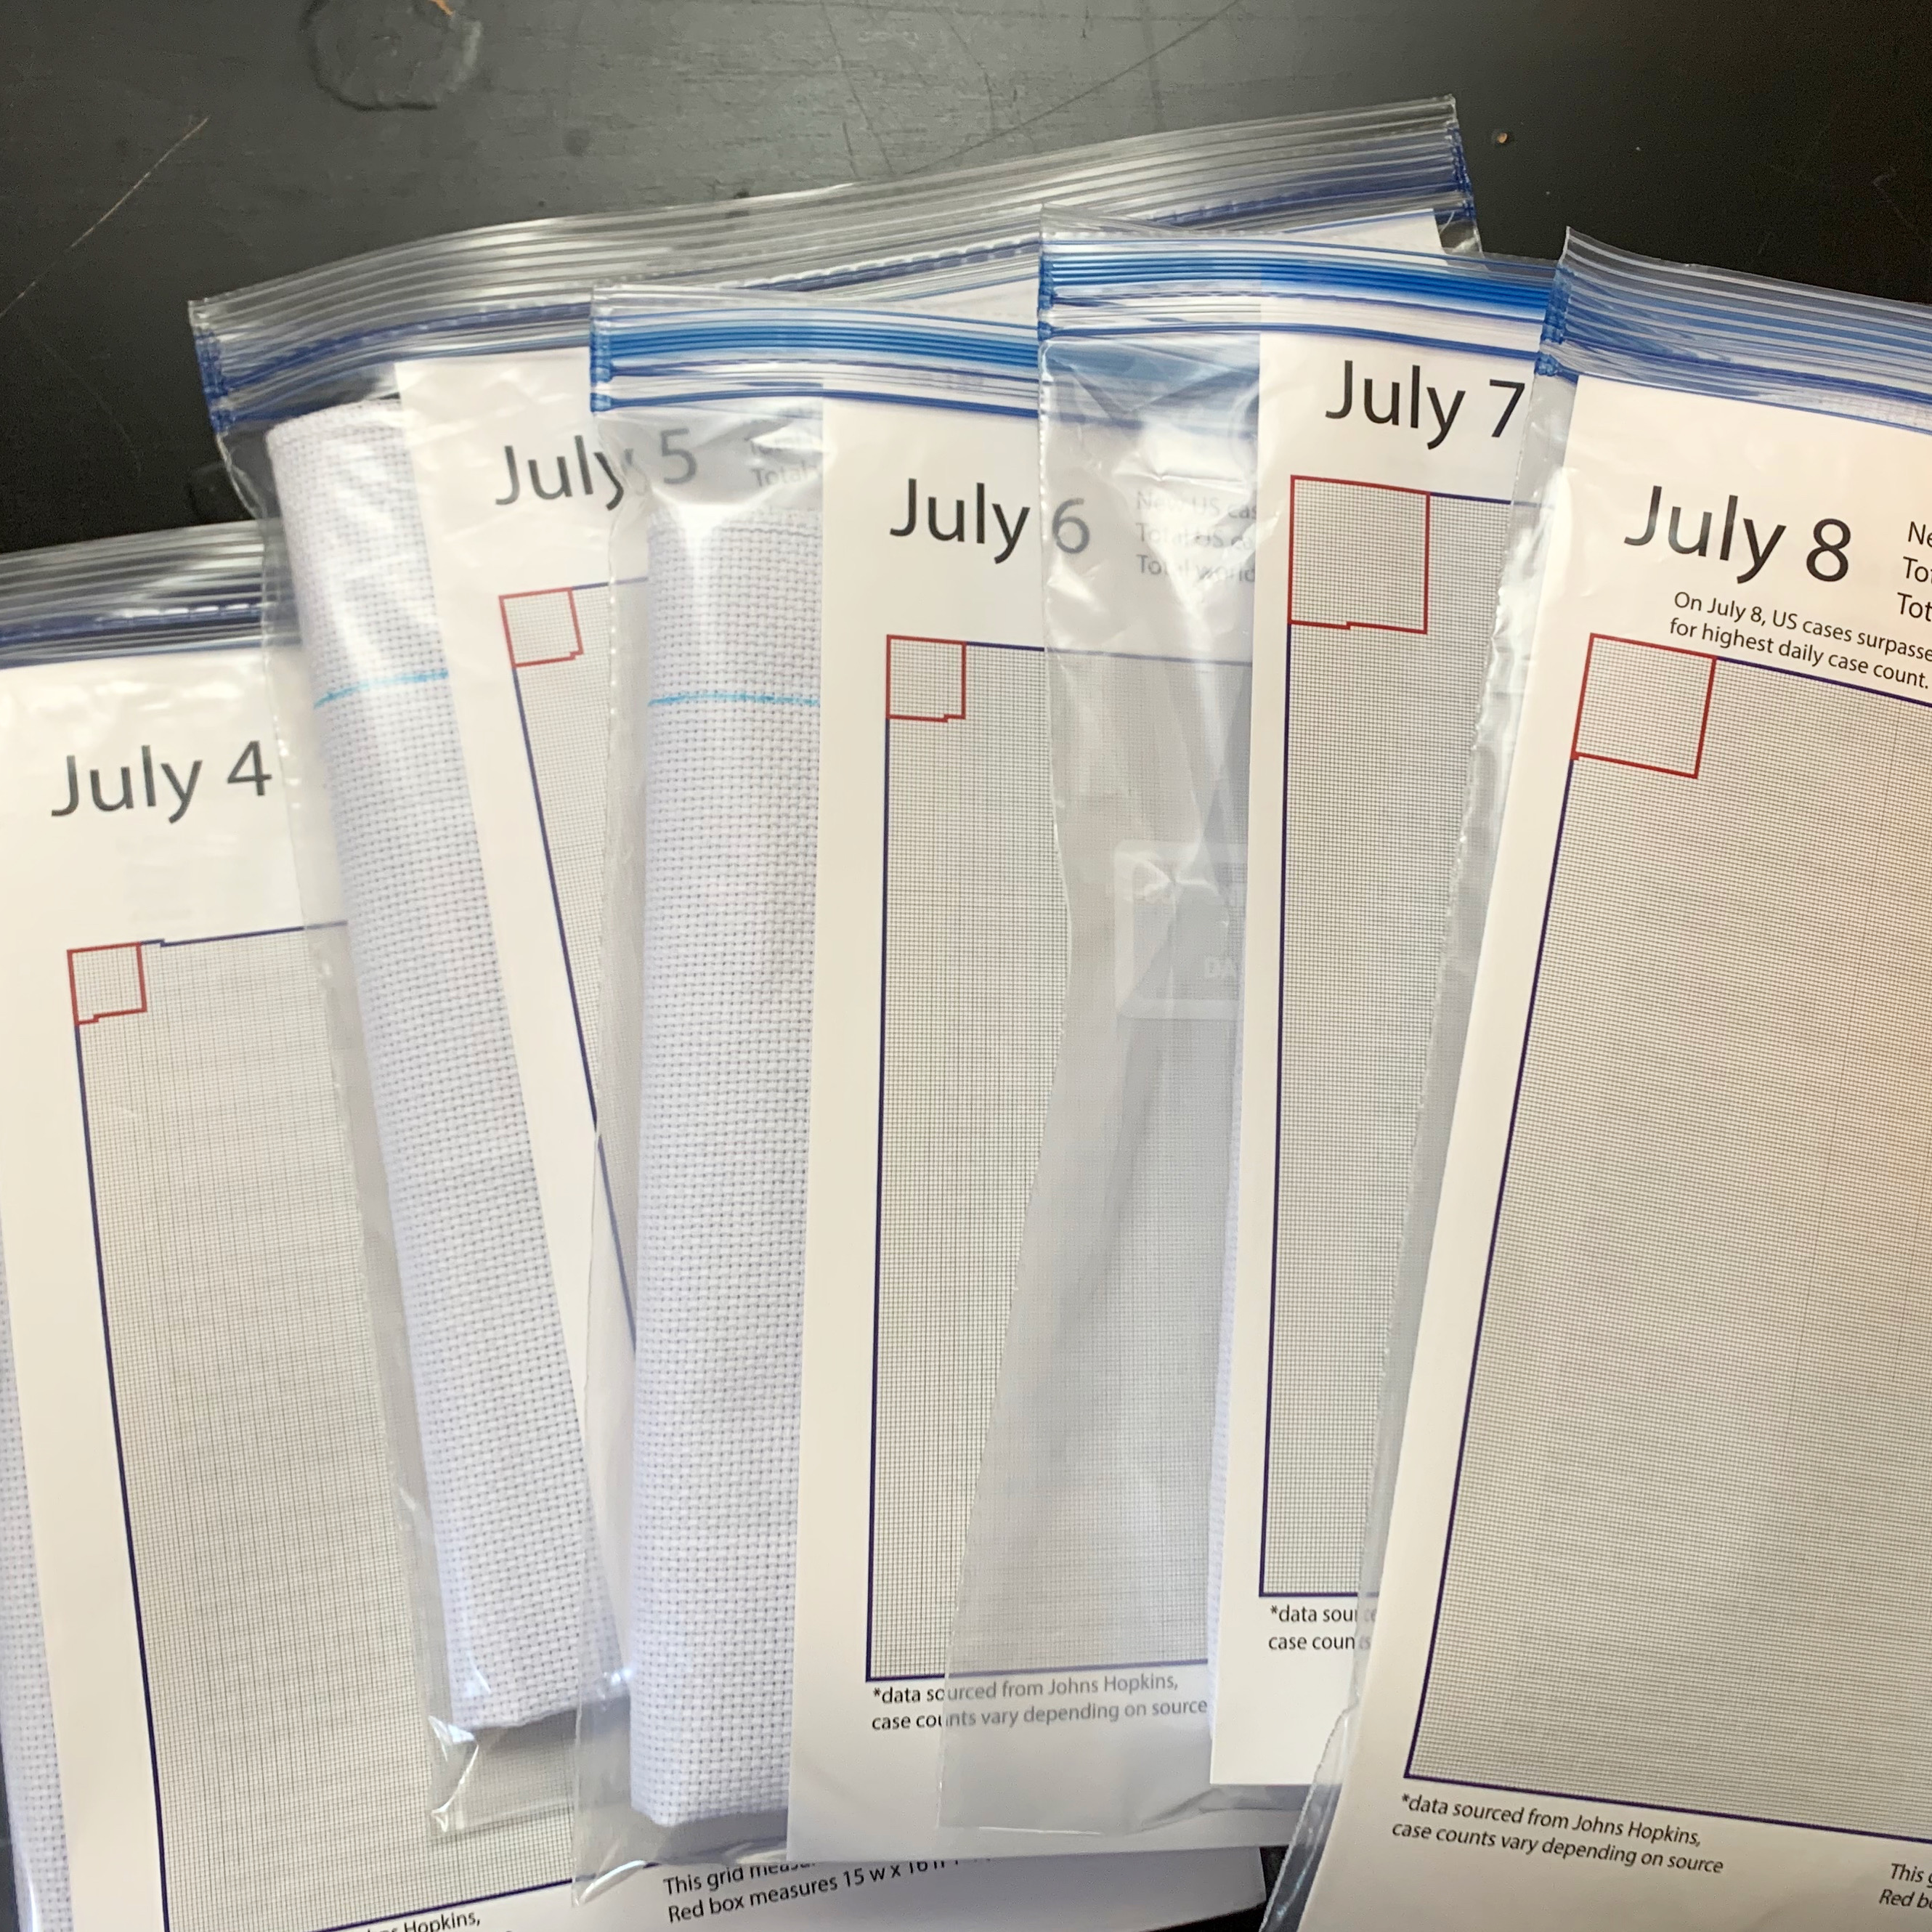 embroidery packs in plastic wallets, each with a different date in July.